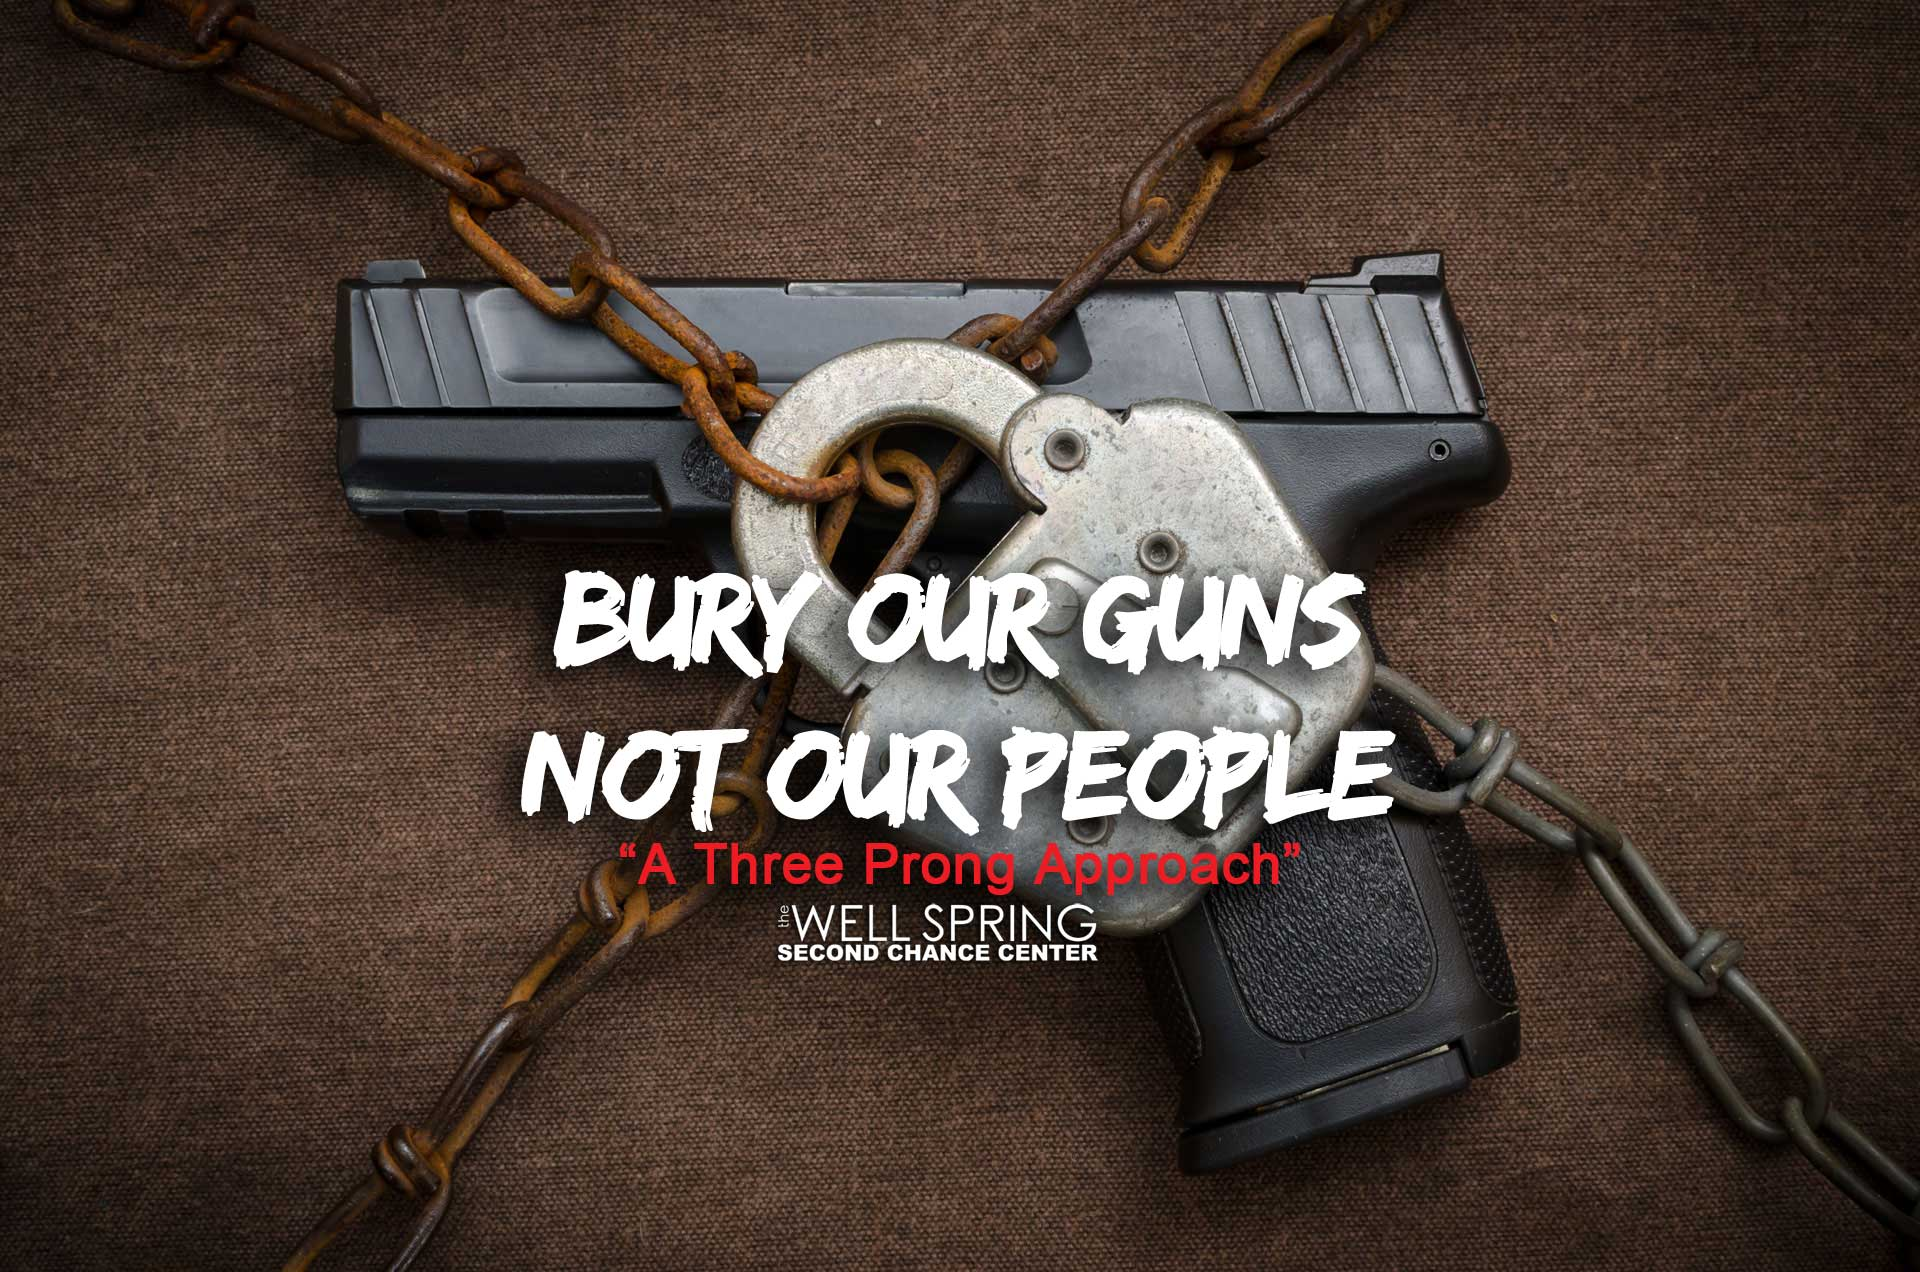 Well Spring Second Chance Centers Bury our guns and not our people campaign